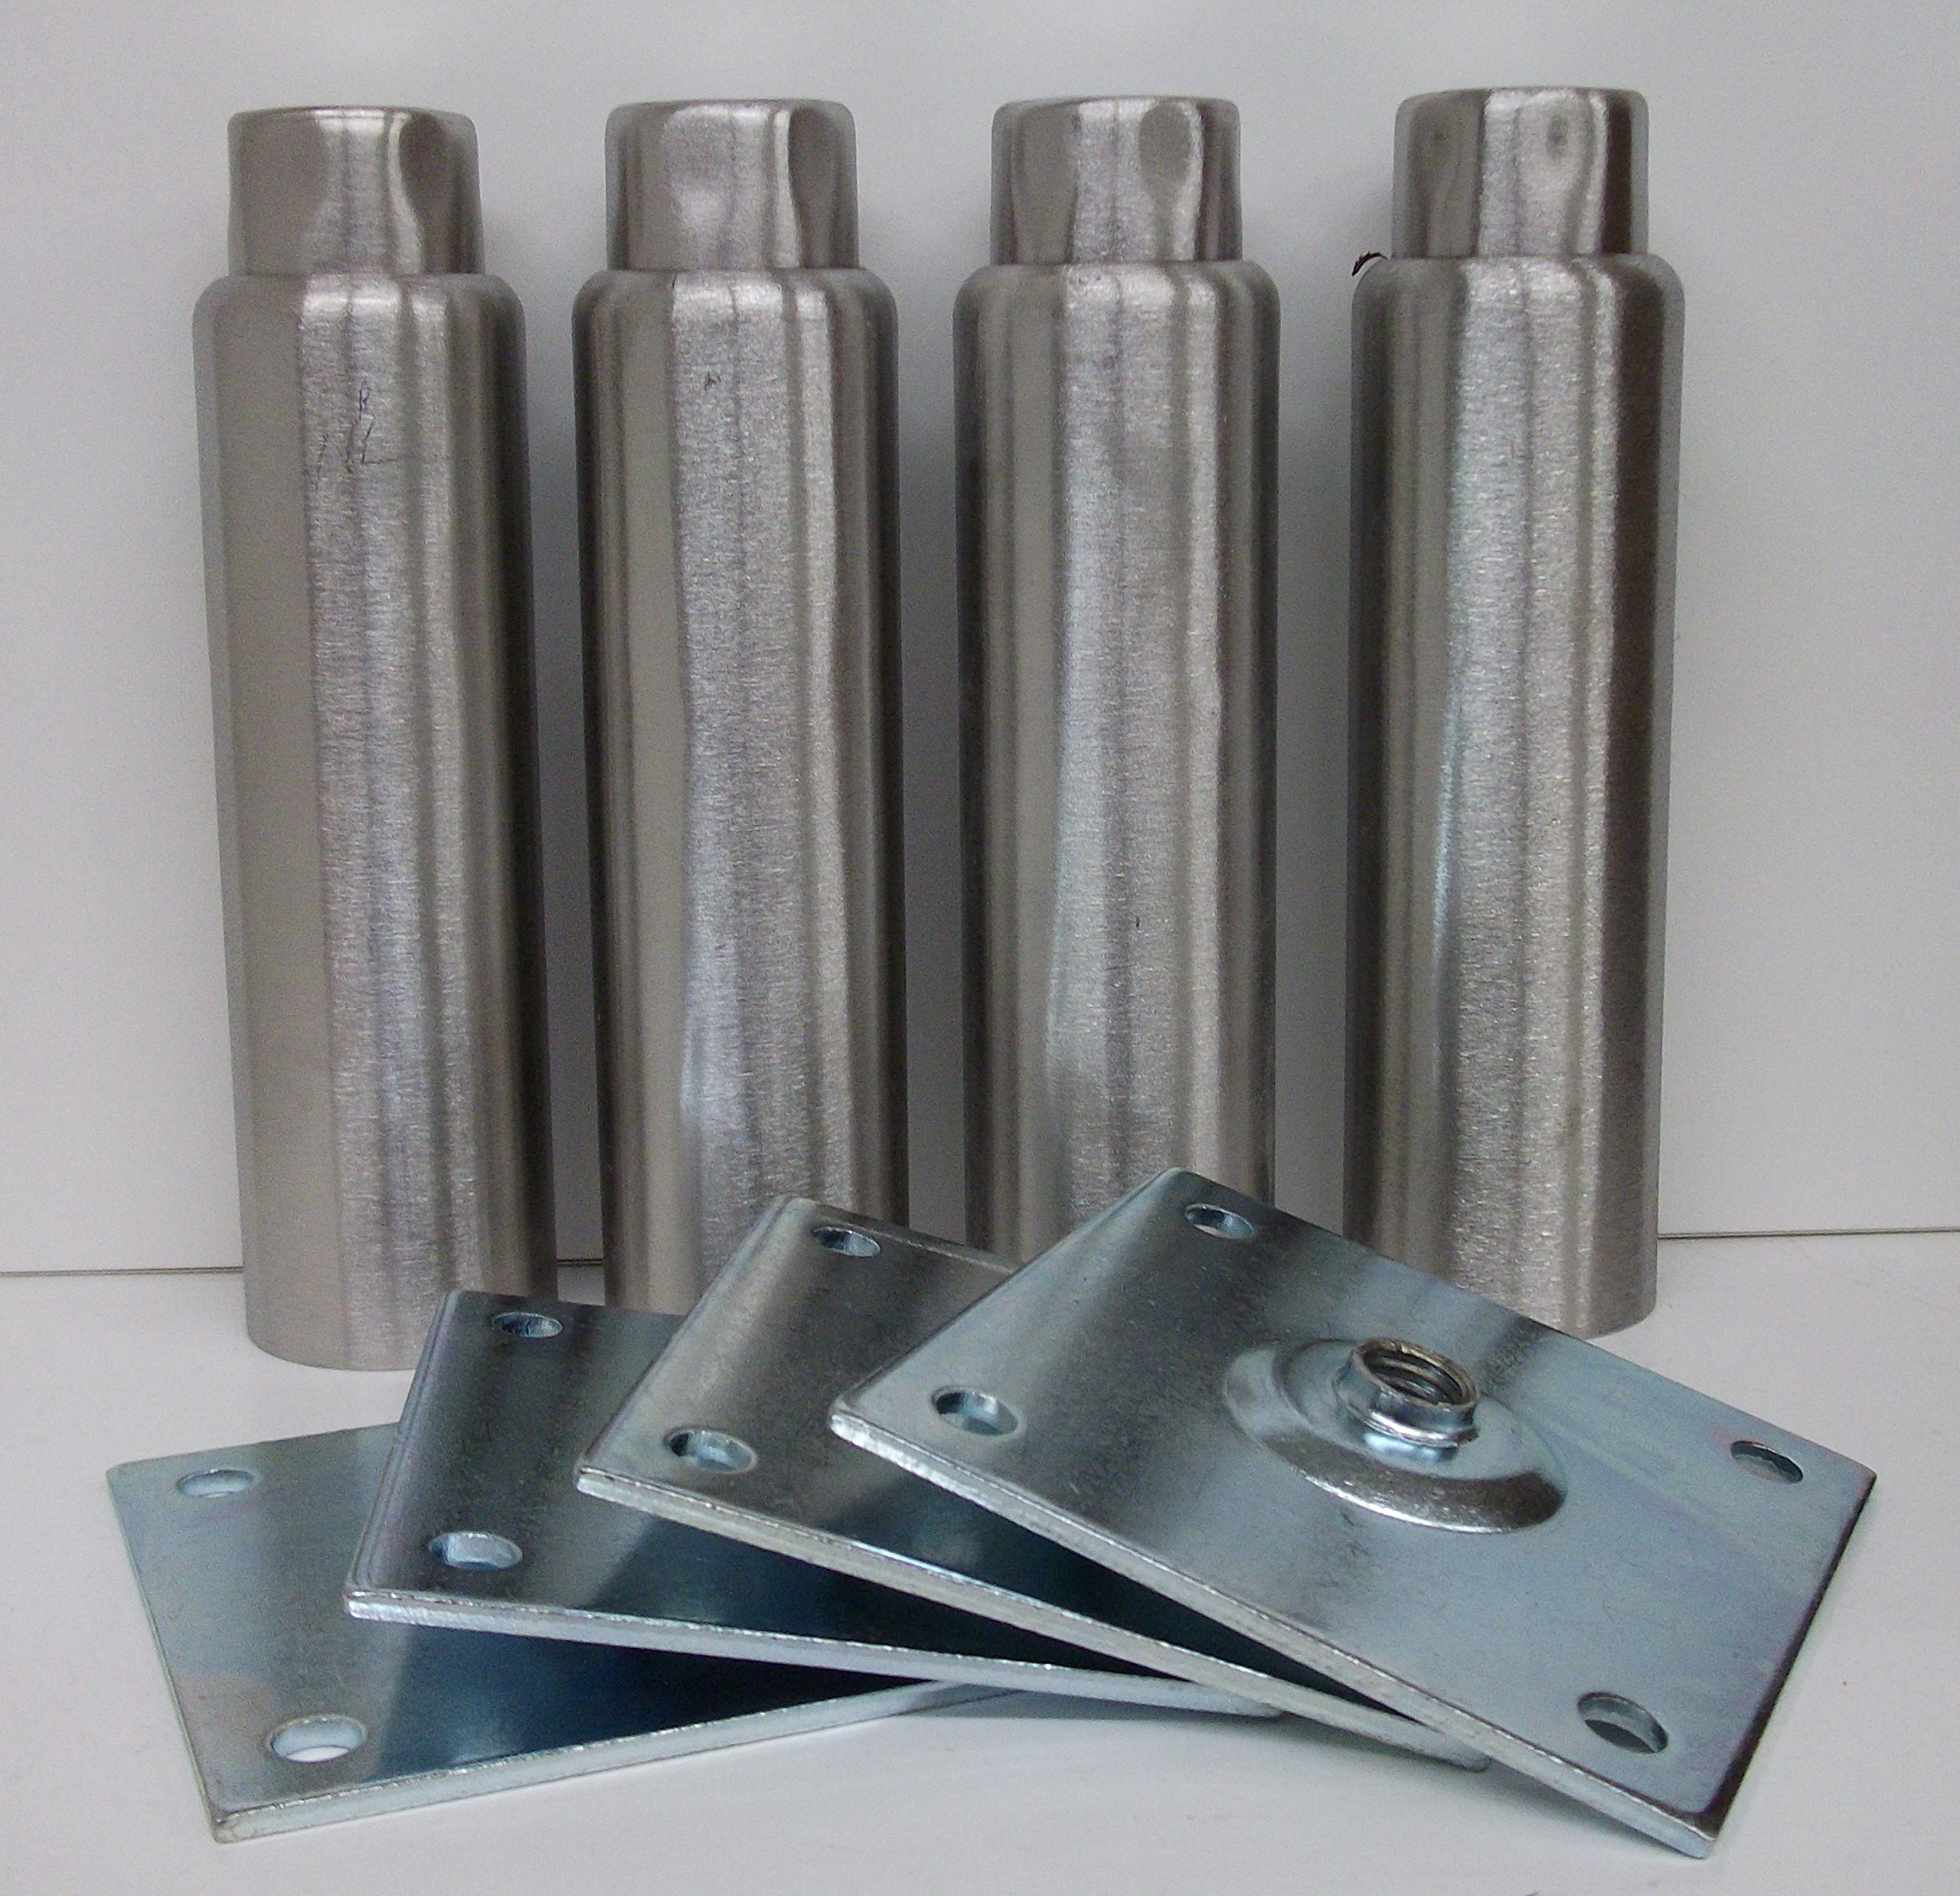 Component Hardware NSF A48-5048-C 6'' Stainless Steel Adjustable Leg ''set of 4 legs''